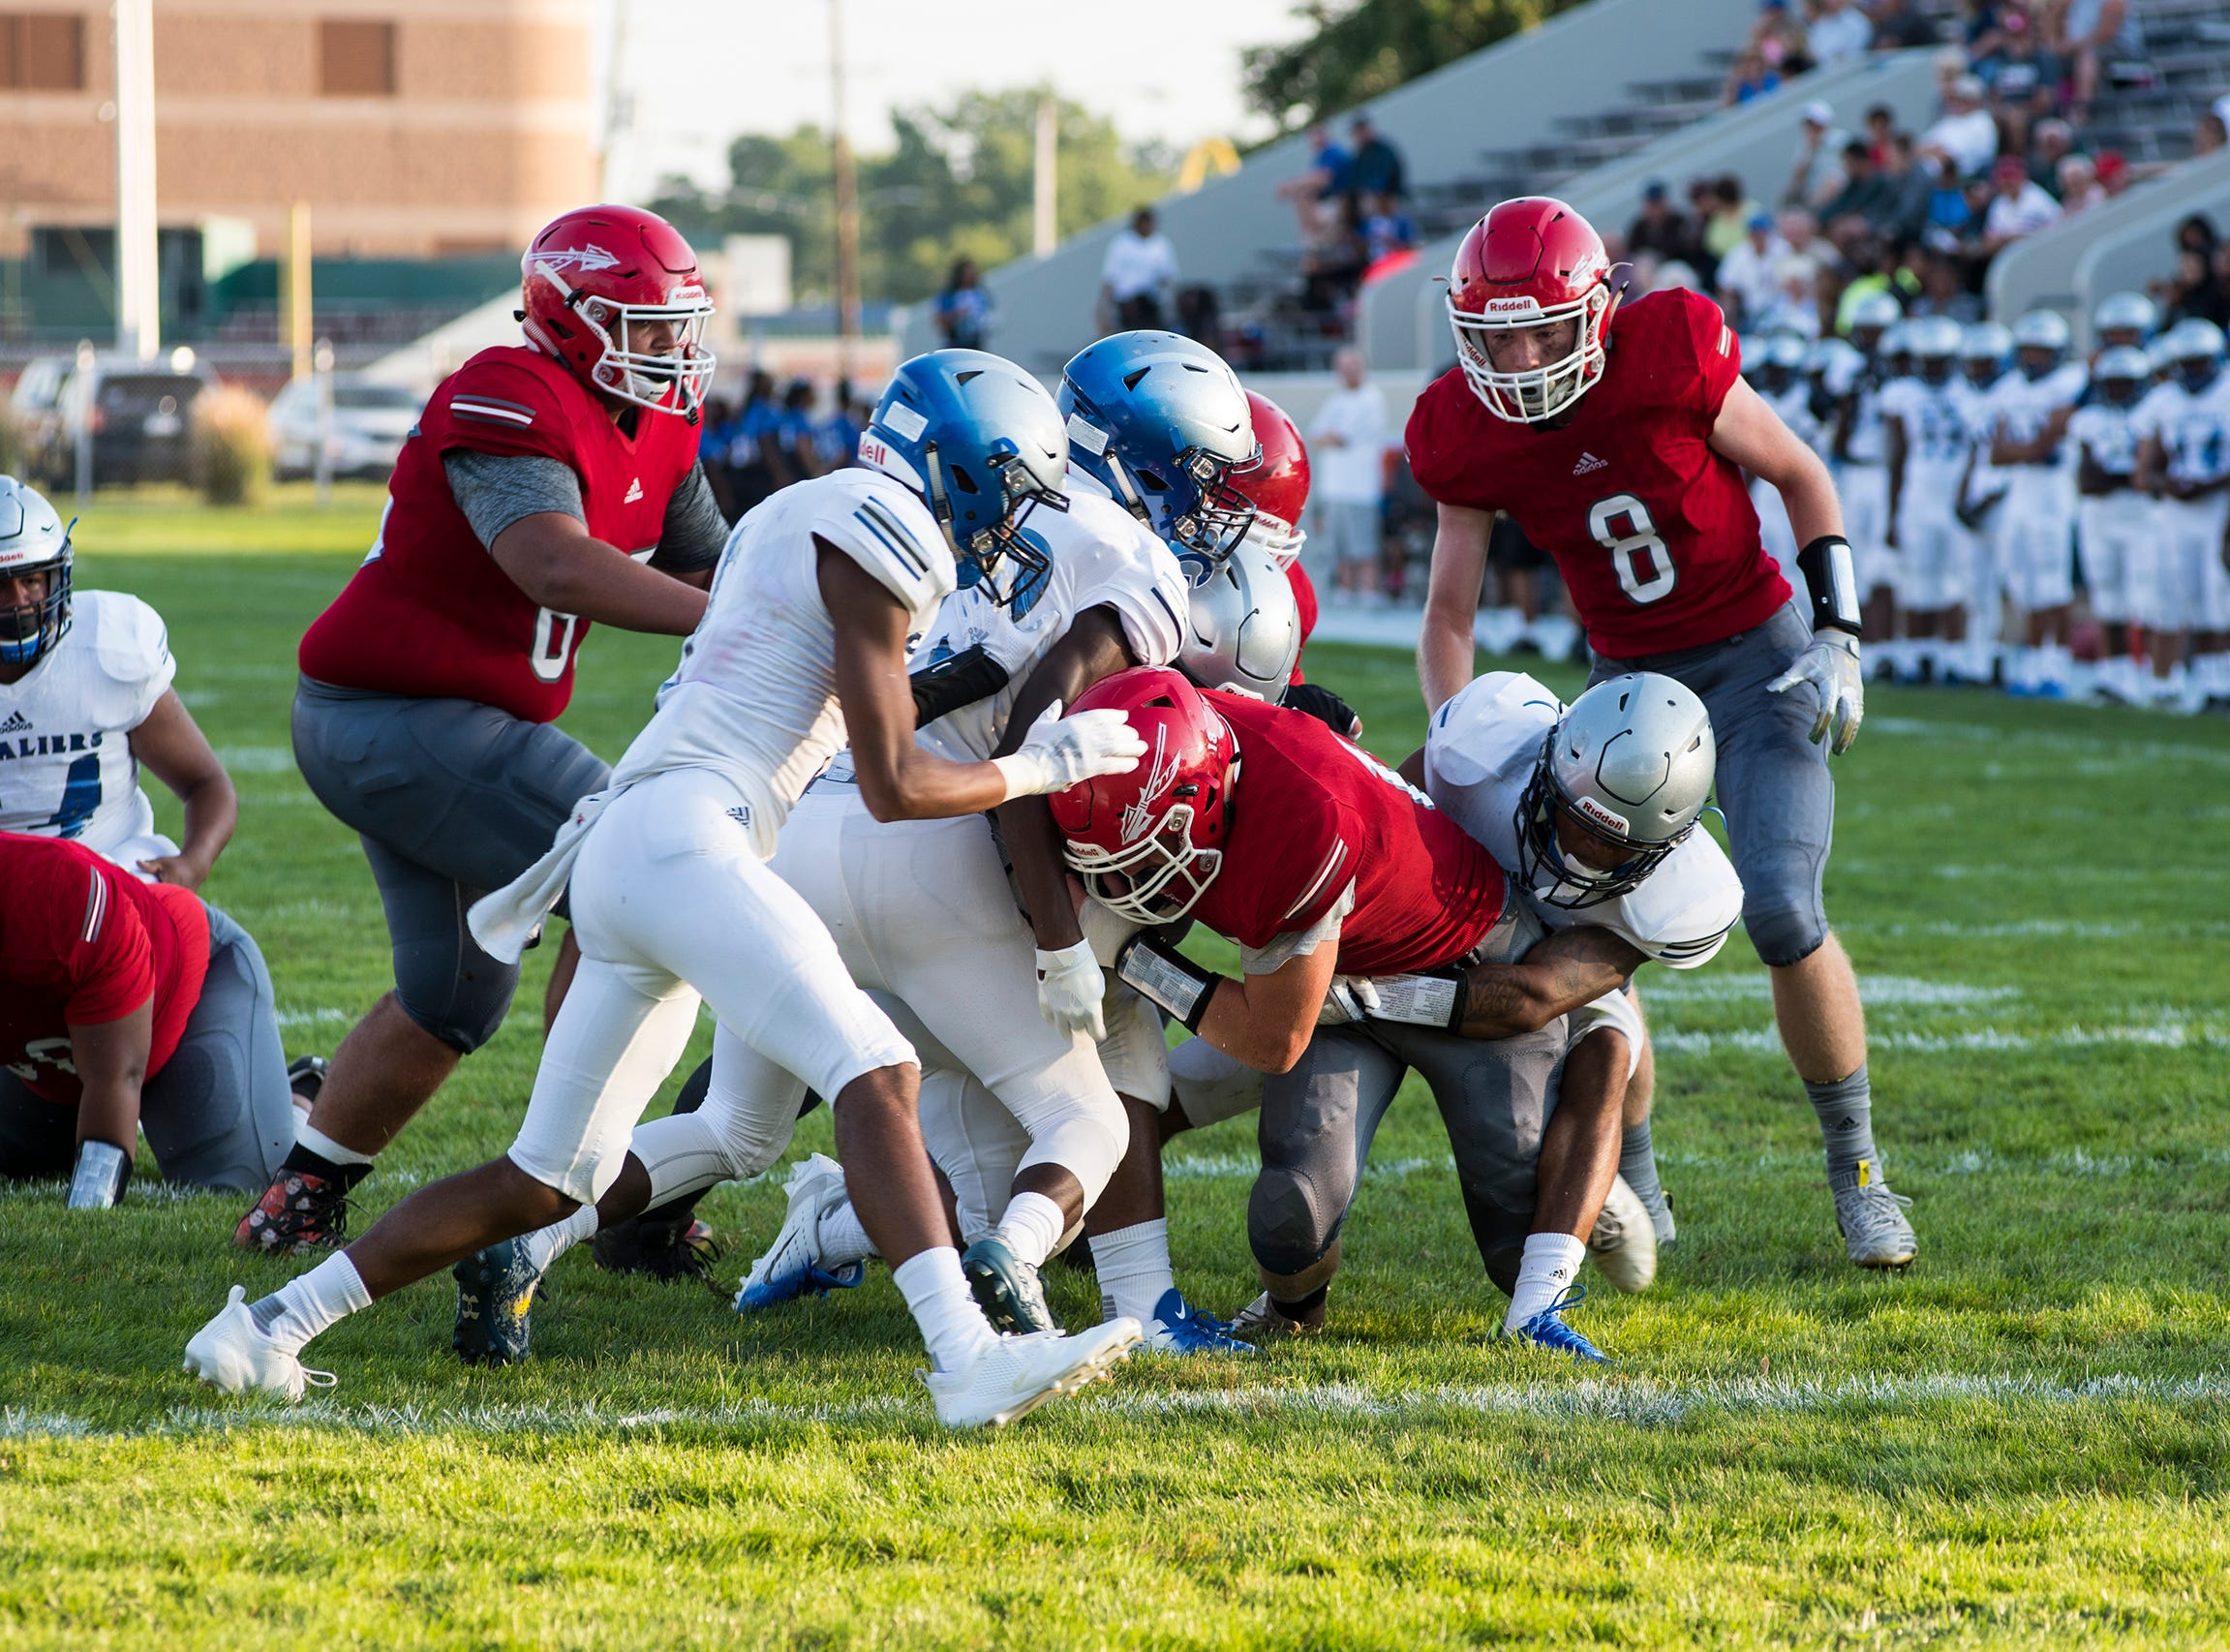 Port Huron High School running back Josh Butler is brought down inside the end zone, giving Port Huron its first touchdown during the Big Reds' game against Carman-Ainsworth High School Thursday, Aug. 23, 2018, at Memorial Stadium.